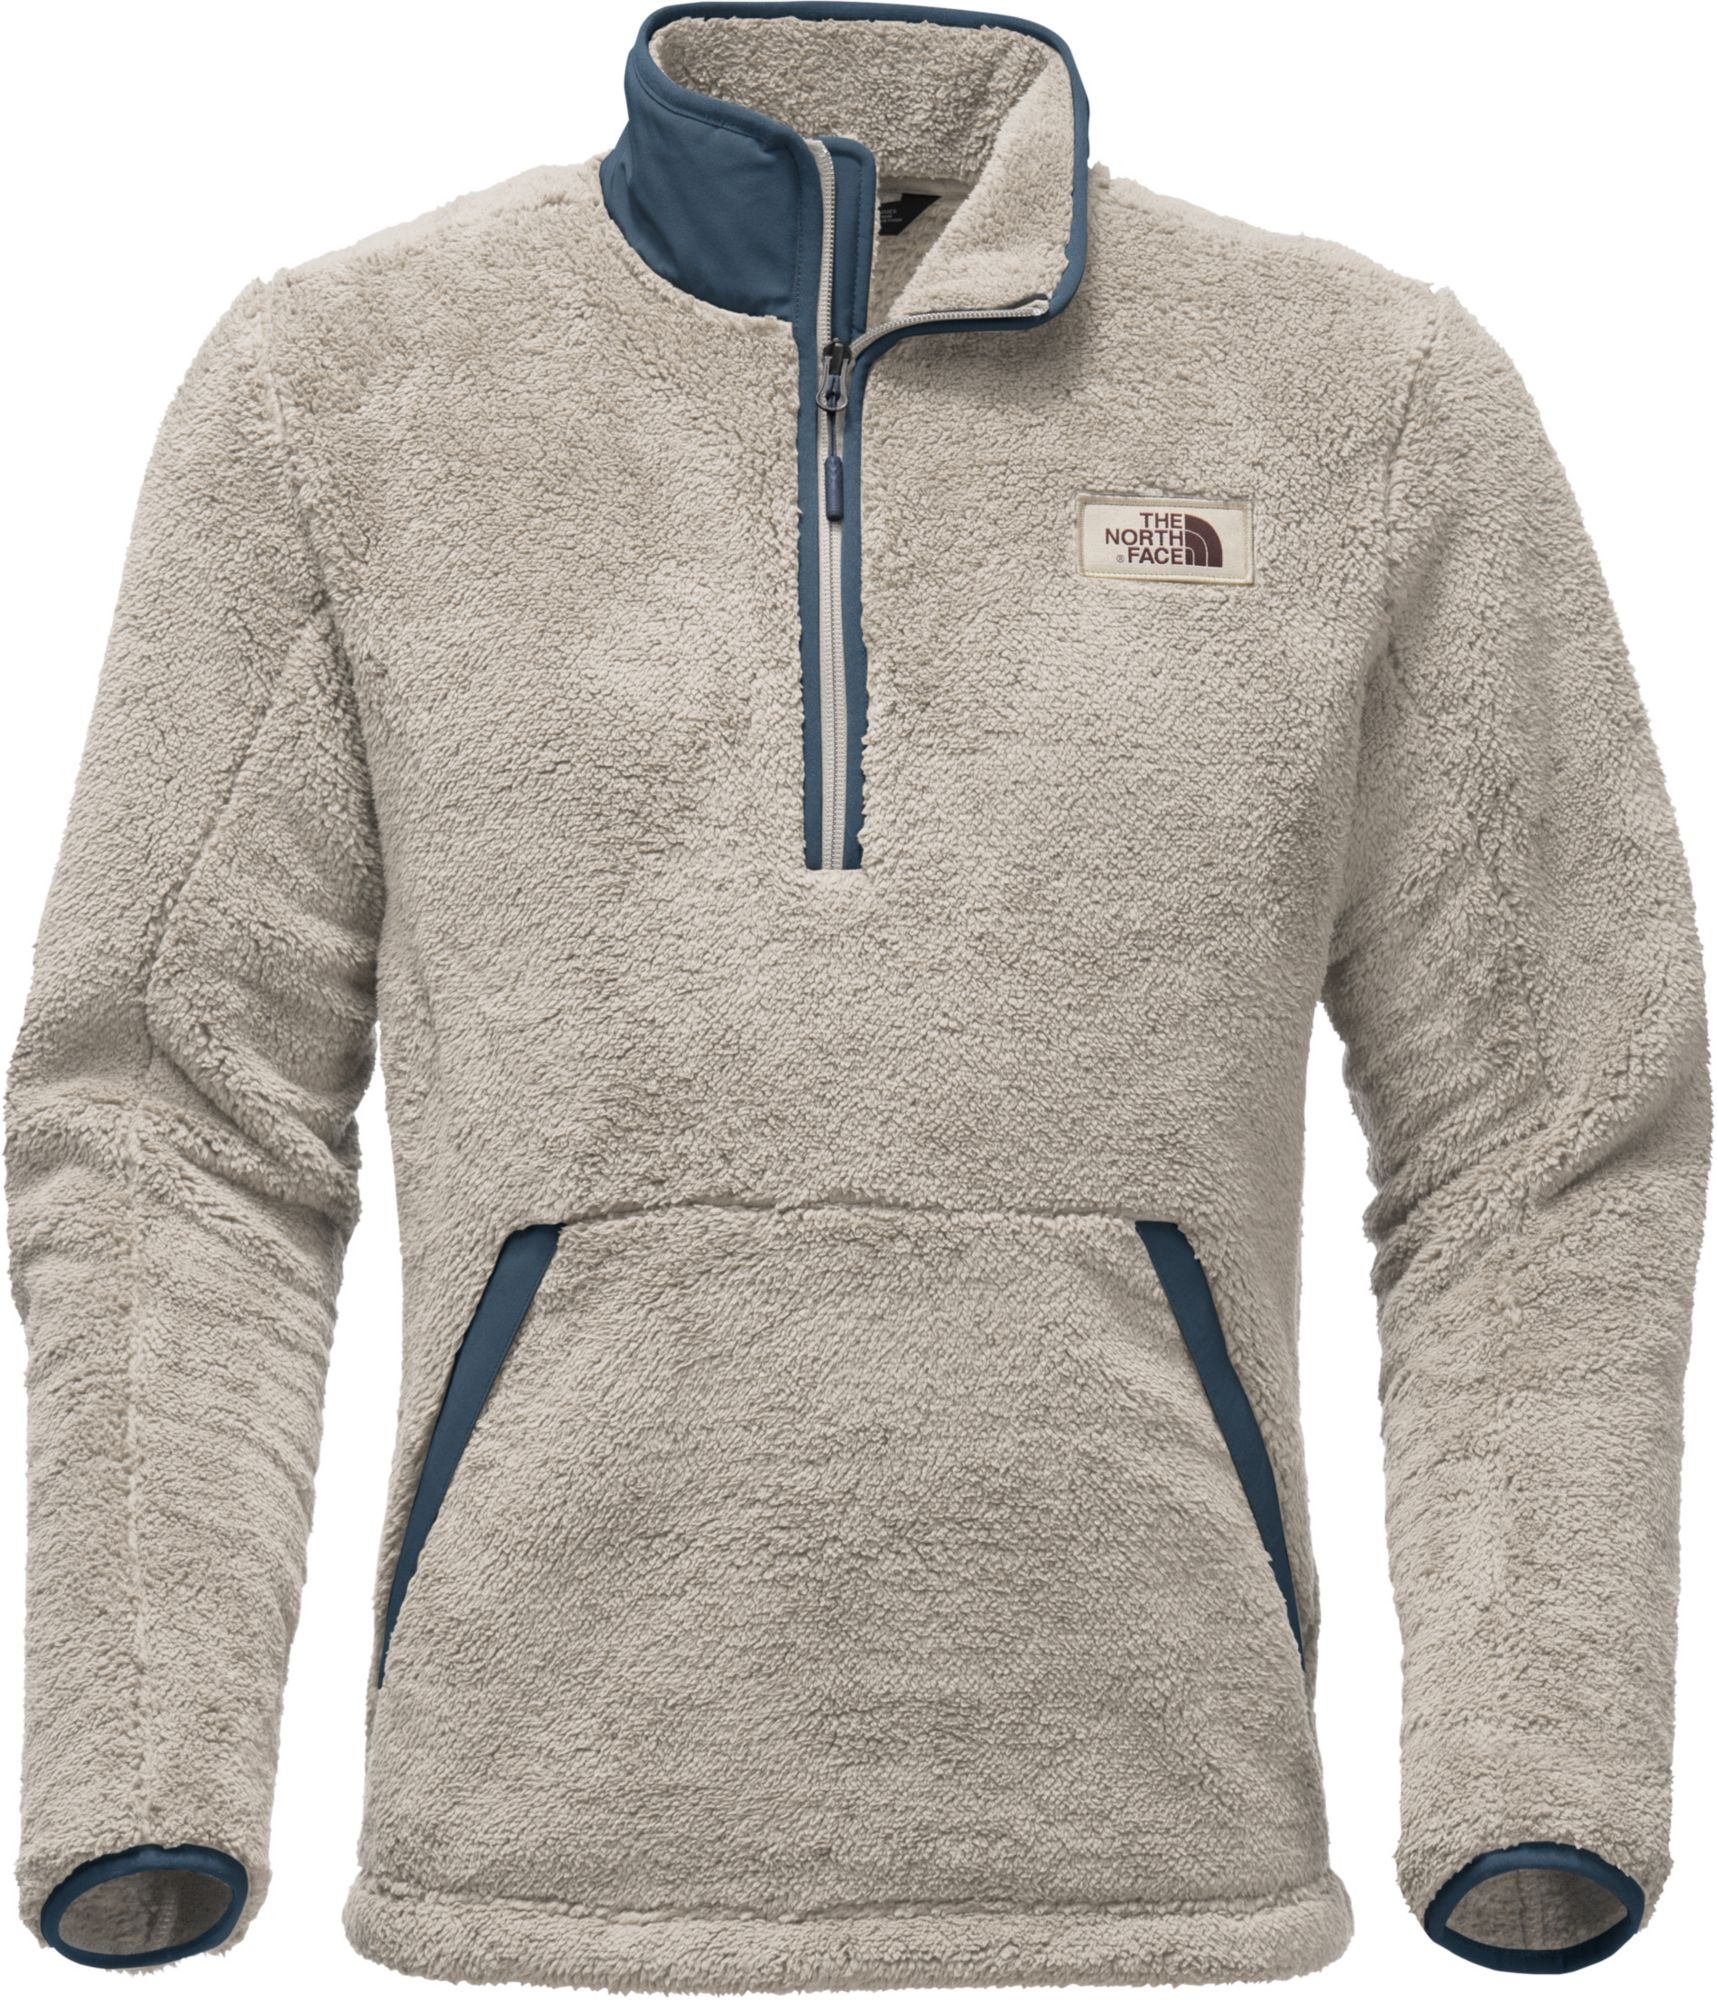 The North Face Men's Campshire Fleece Pullover | DICK'S Sporting Goods